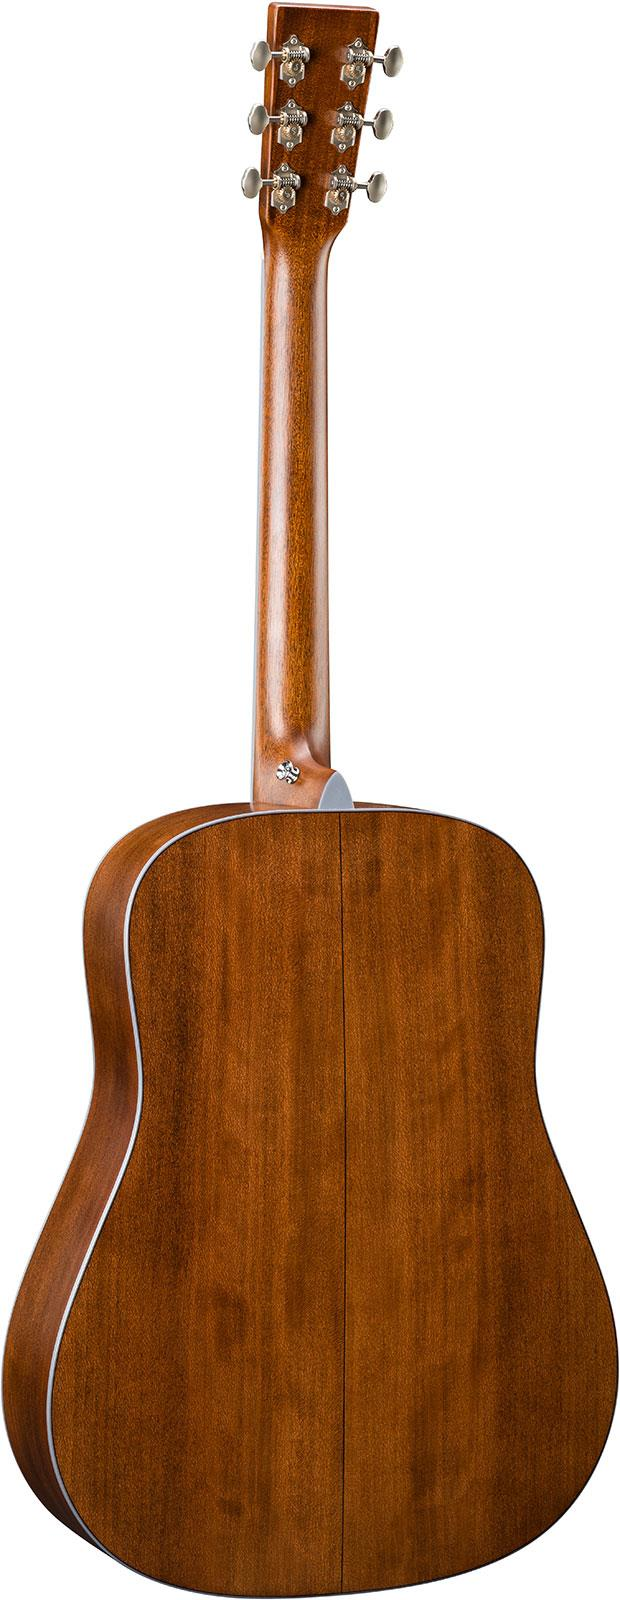 Musical Instruments & Gear Acoustic Guitars Martin D-16e